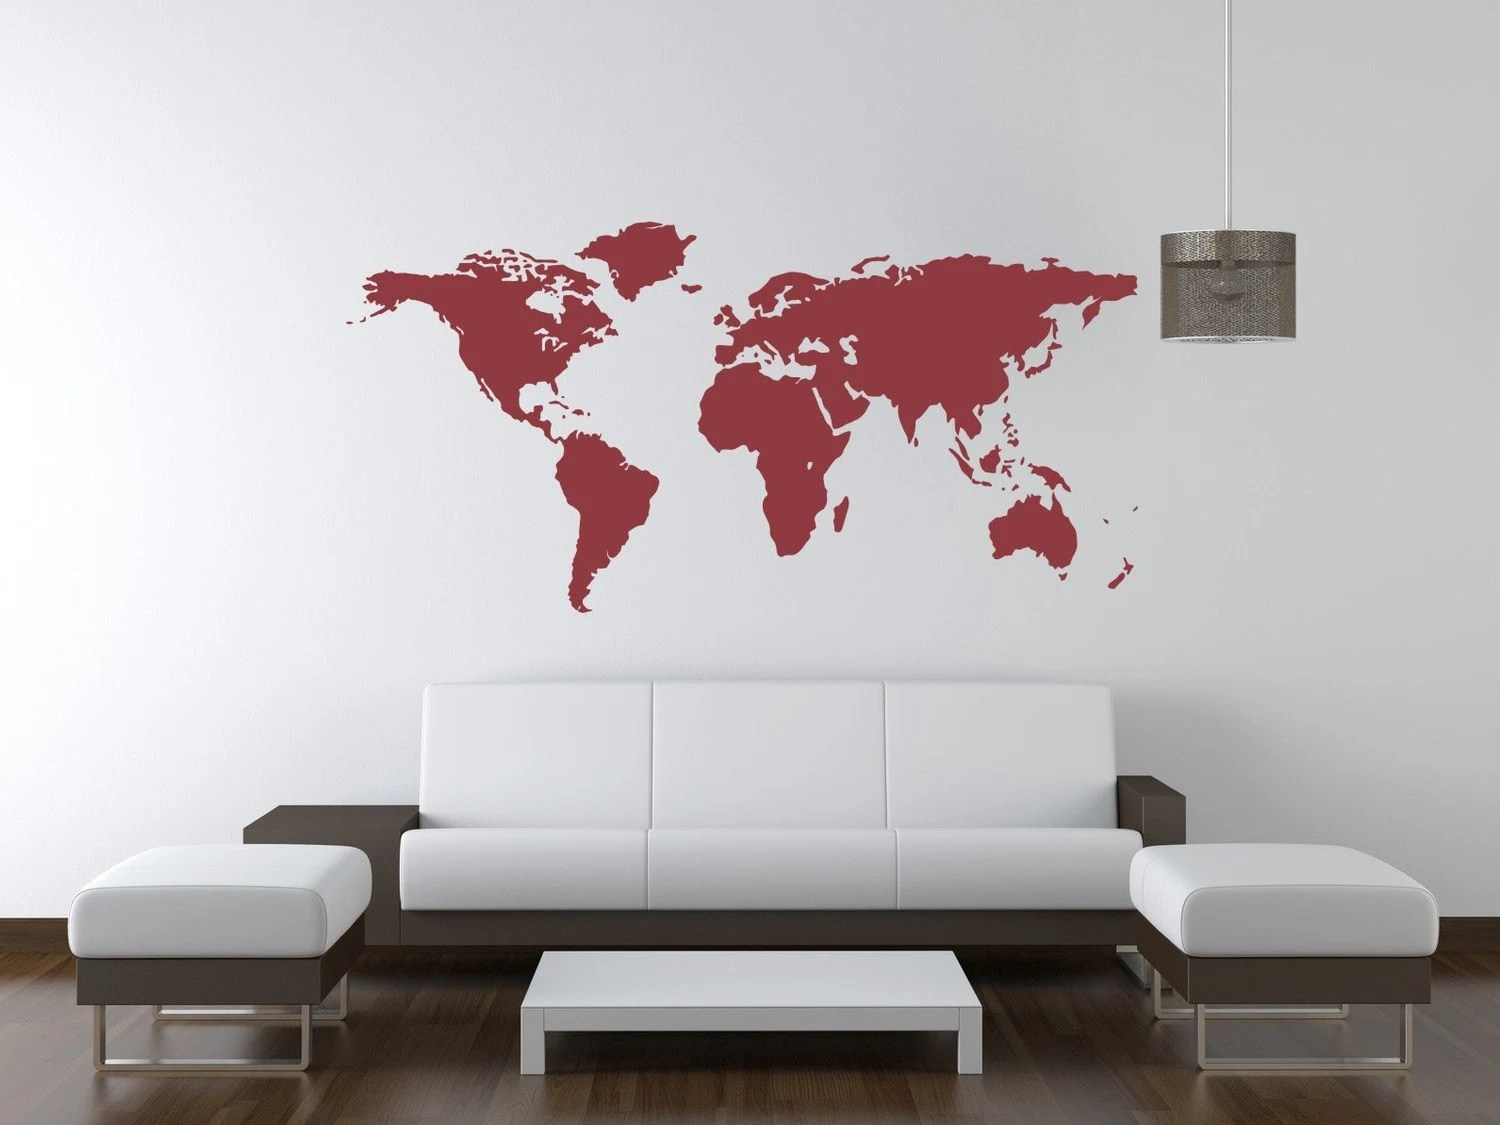 Gamma Fotobehang World Map World Map Wall Decal World Map Decal Dorm Decor